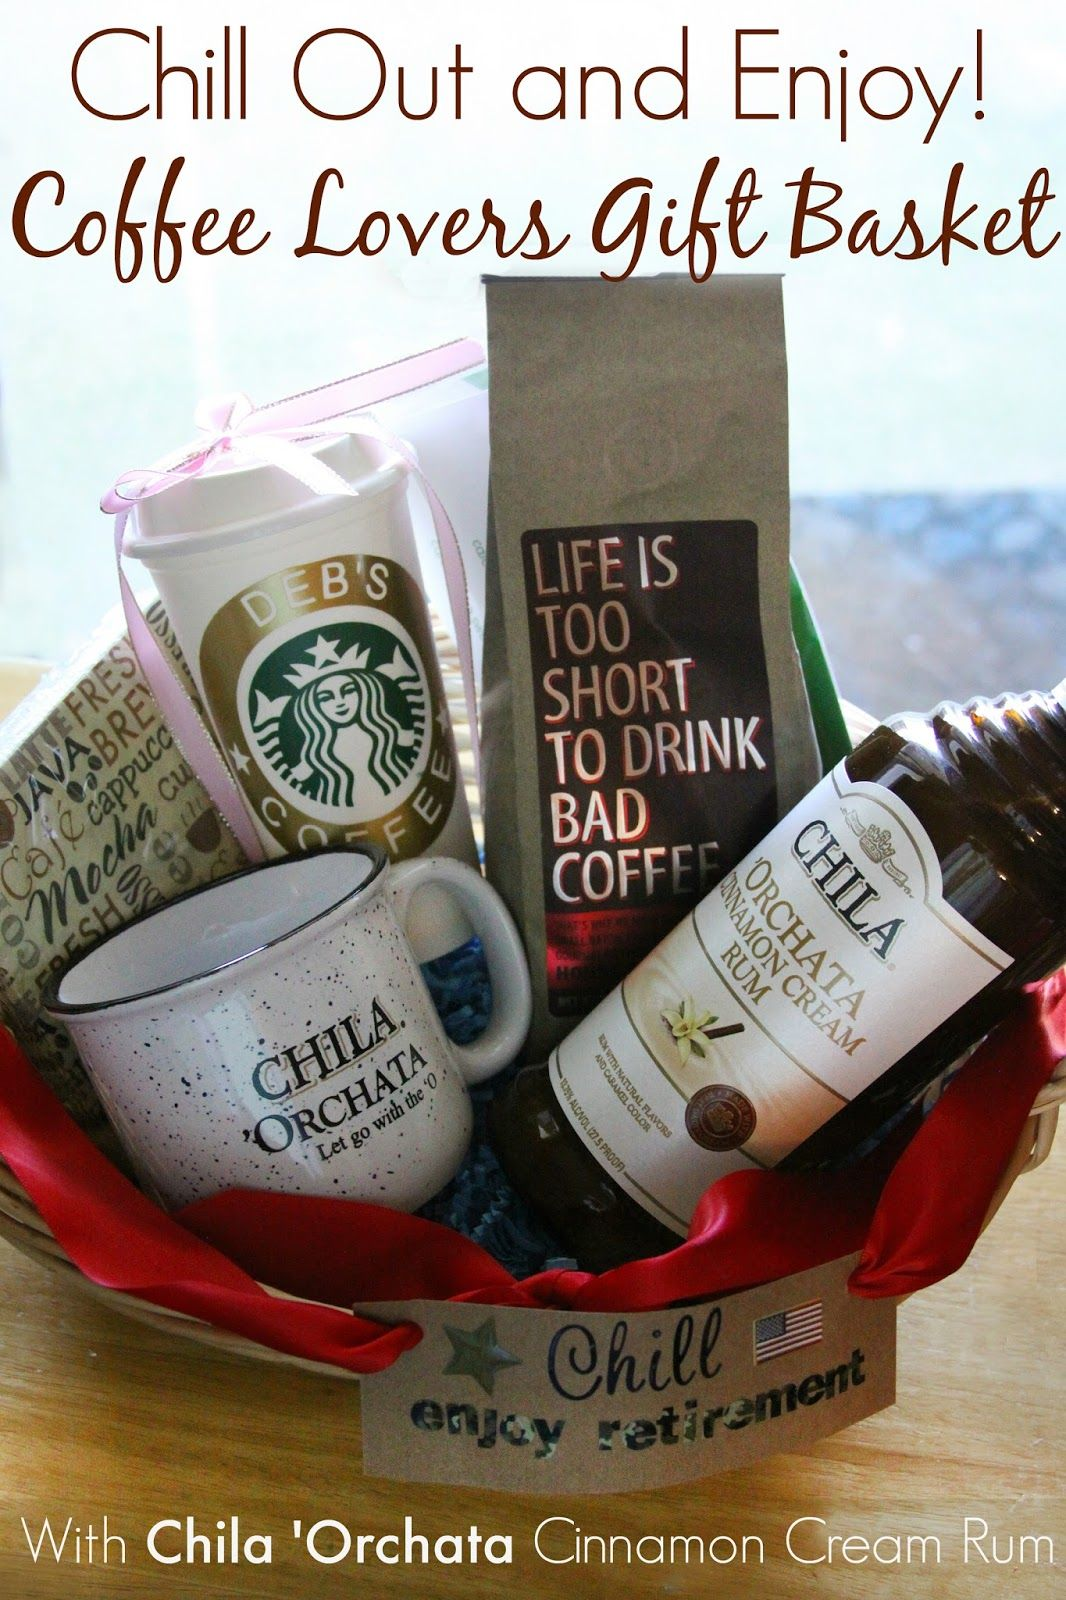 chill out and enjoy! coffee lovers chila 'orchata gift basket